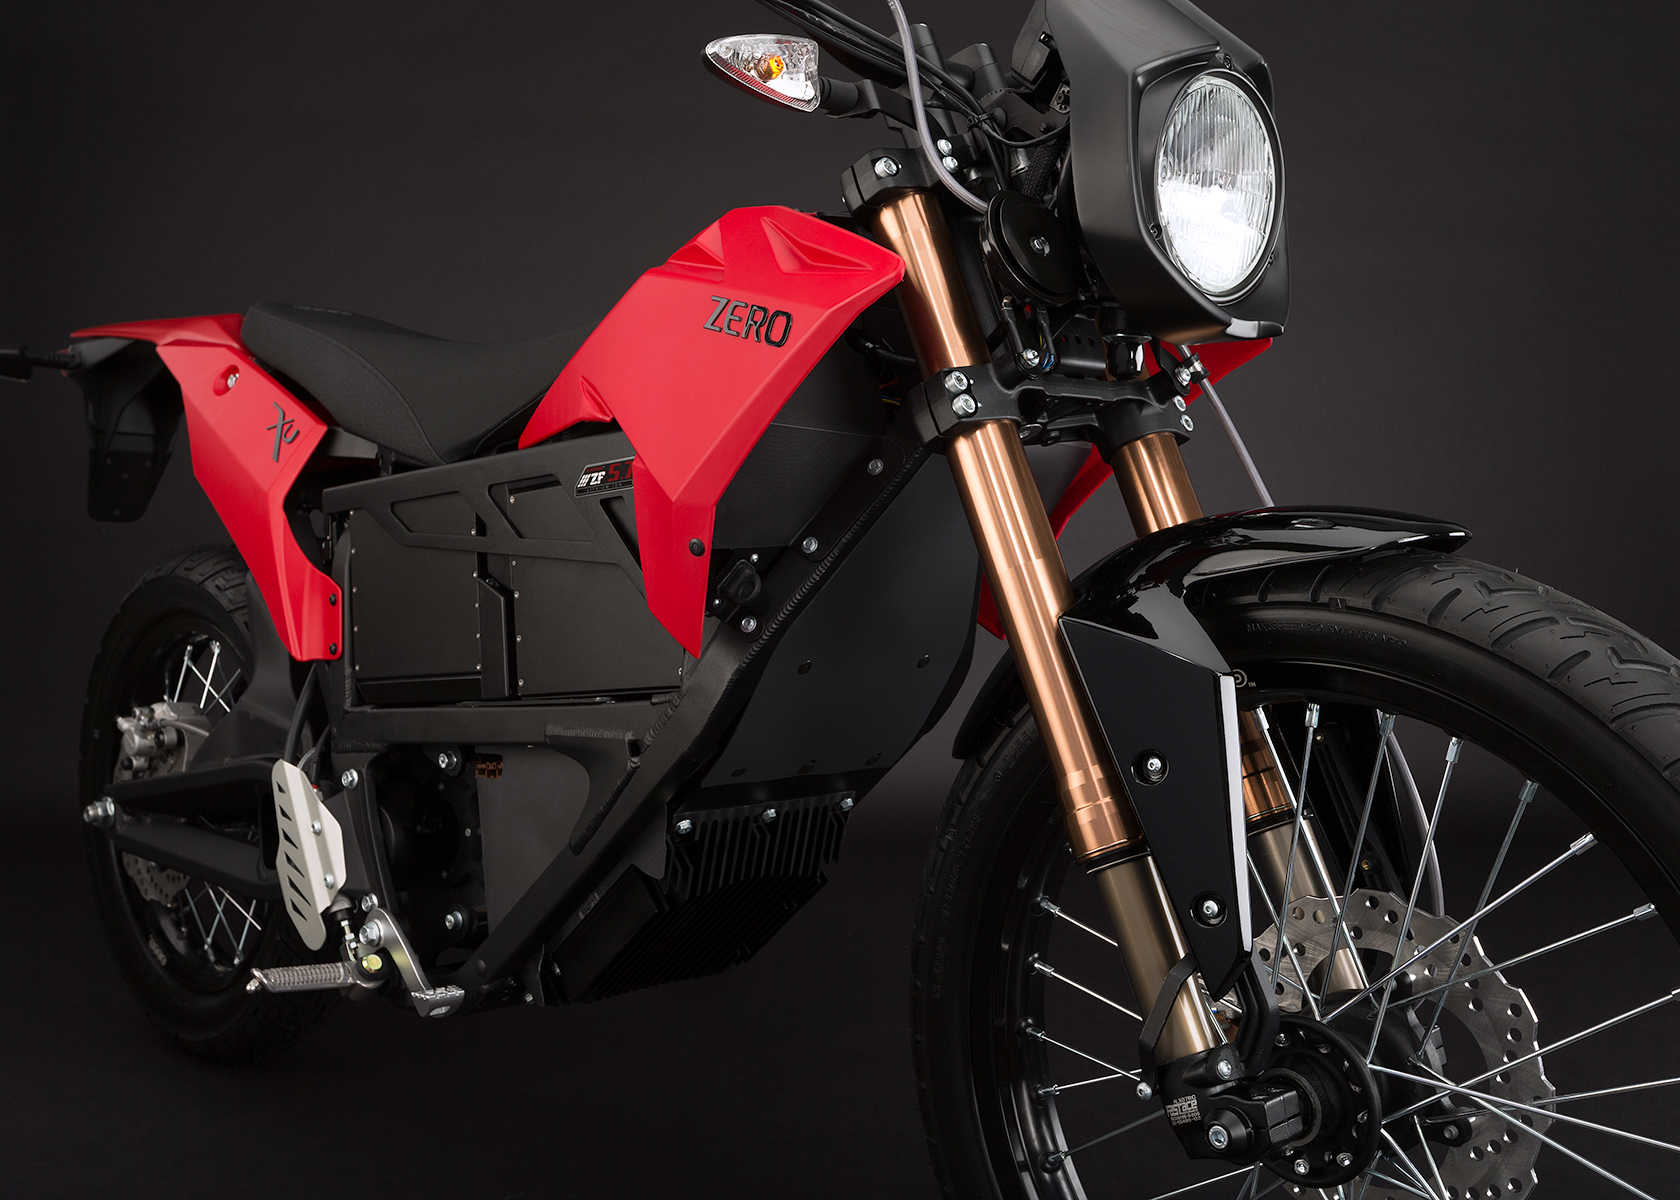 2013 Zero XU Electric Motorcycle: Front Fork